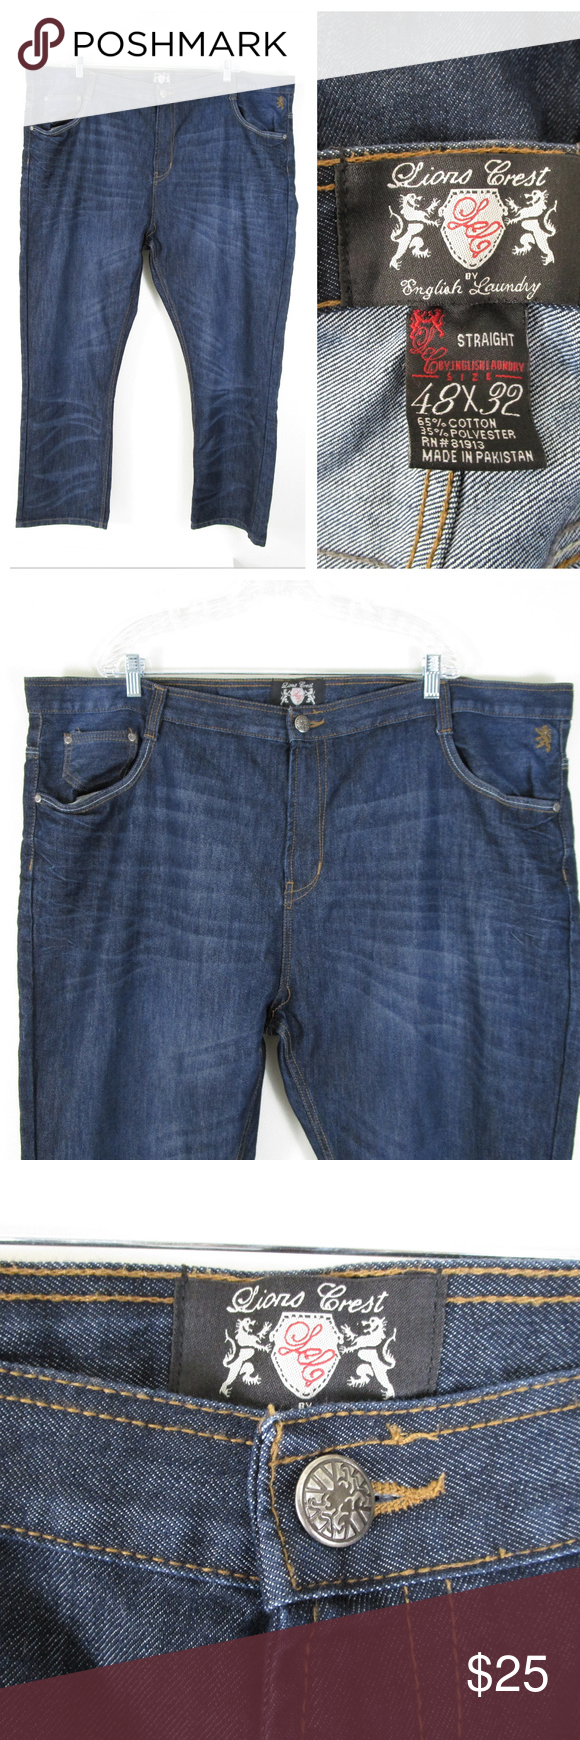 English Laundry Lions Crest Big And Tall Jeans Tall Jeans